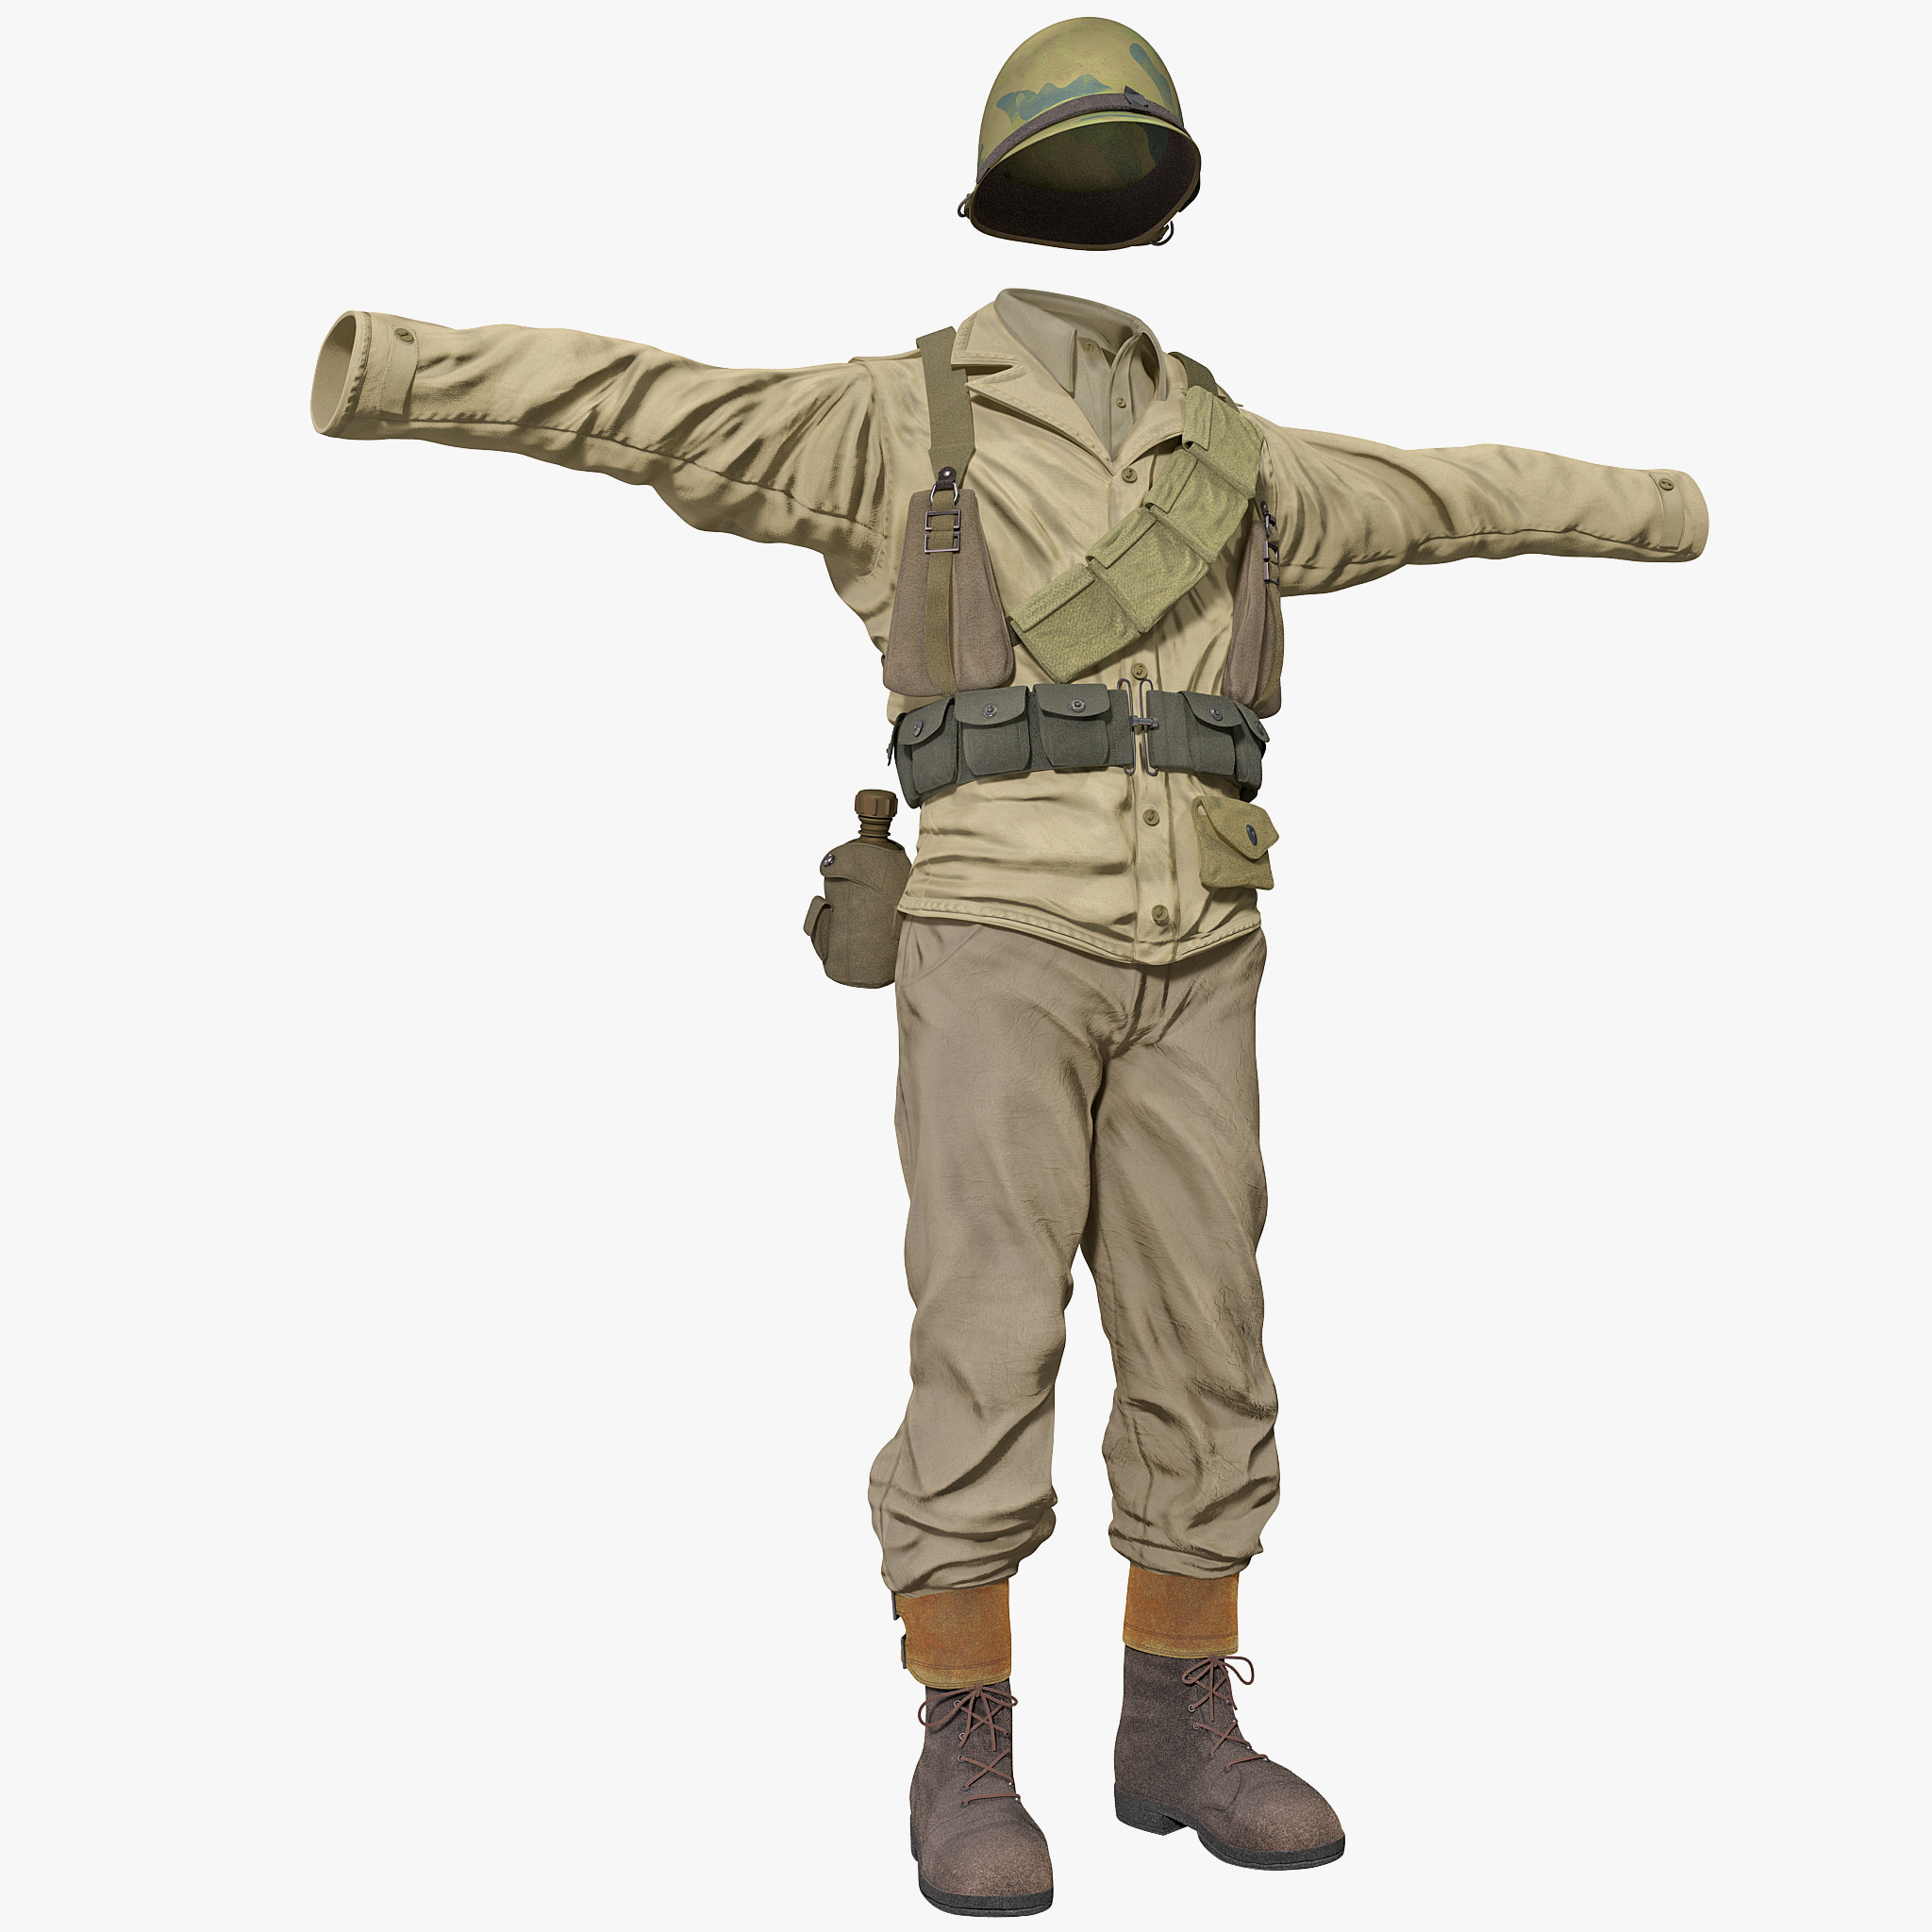 3ds max american wwii infantry soldier